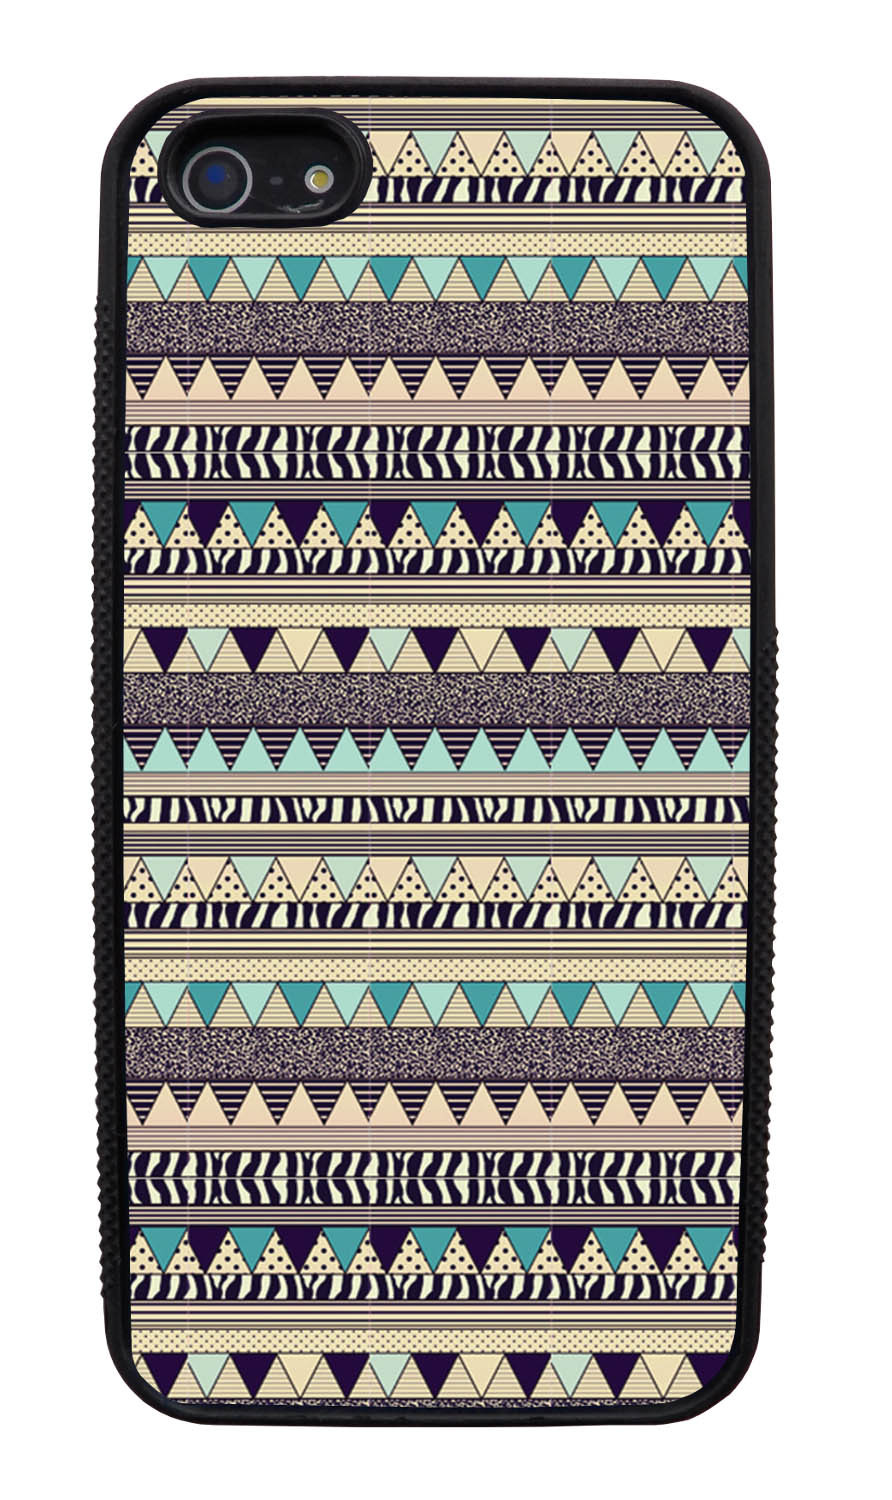 Apple iPhone 5 / 5S Aztec Case - Textured Blue Beige - Geometric - Black Slim Rubber Case